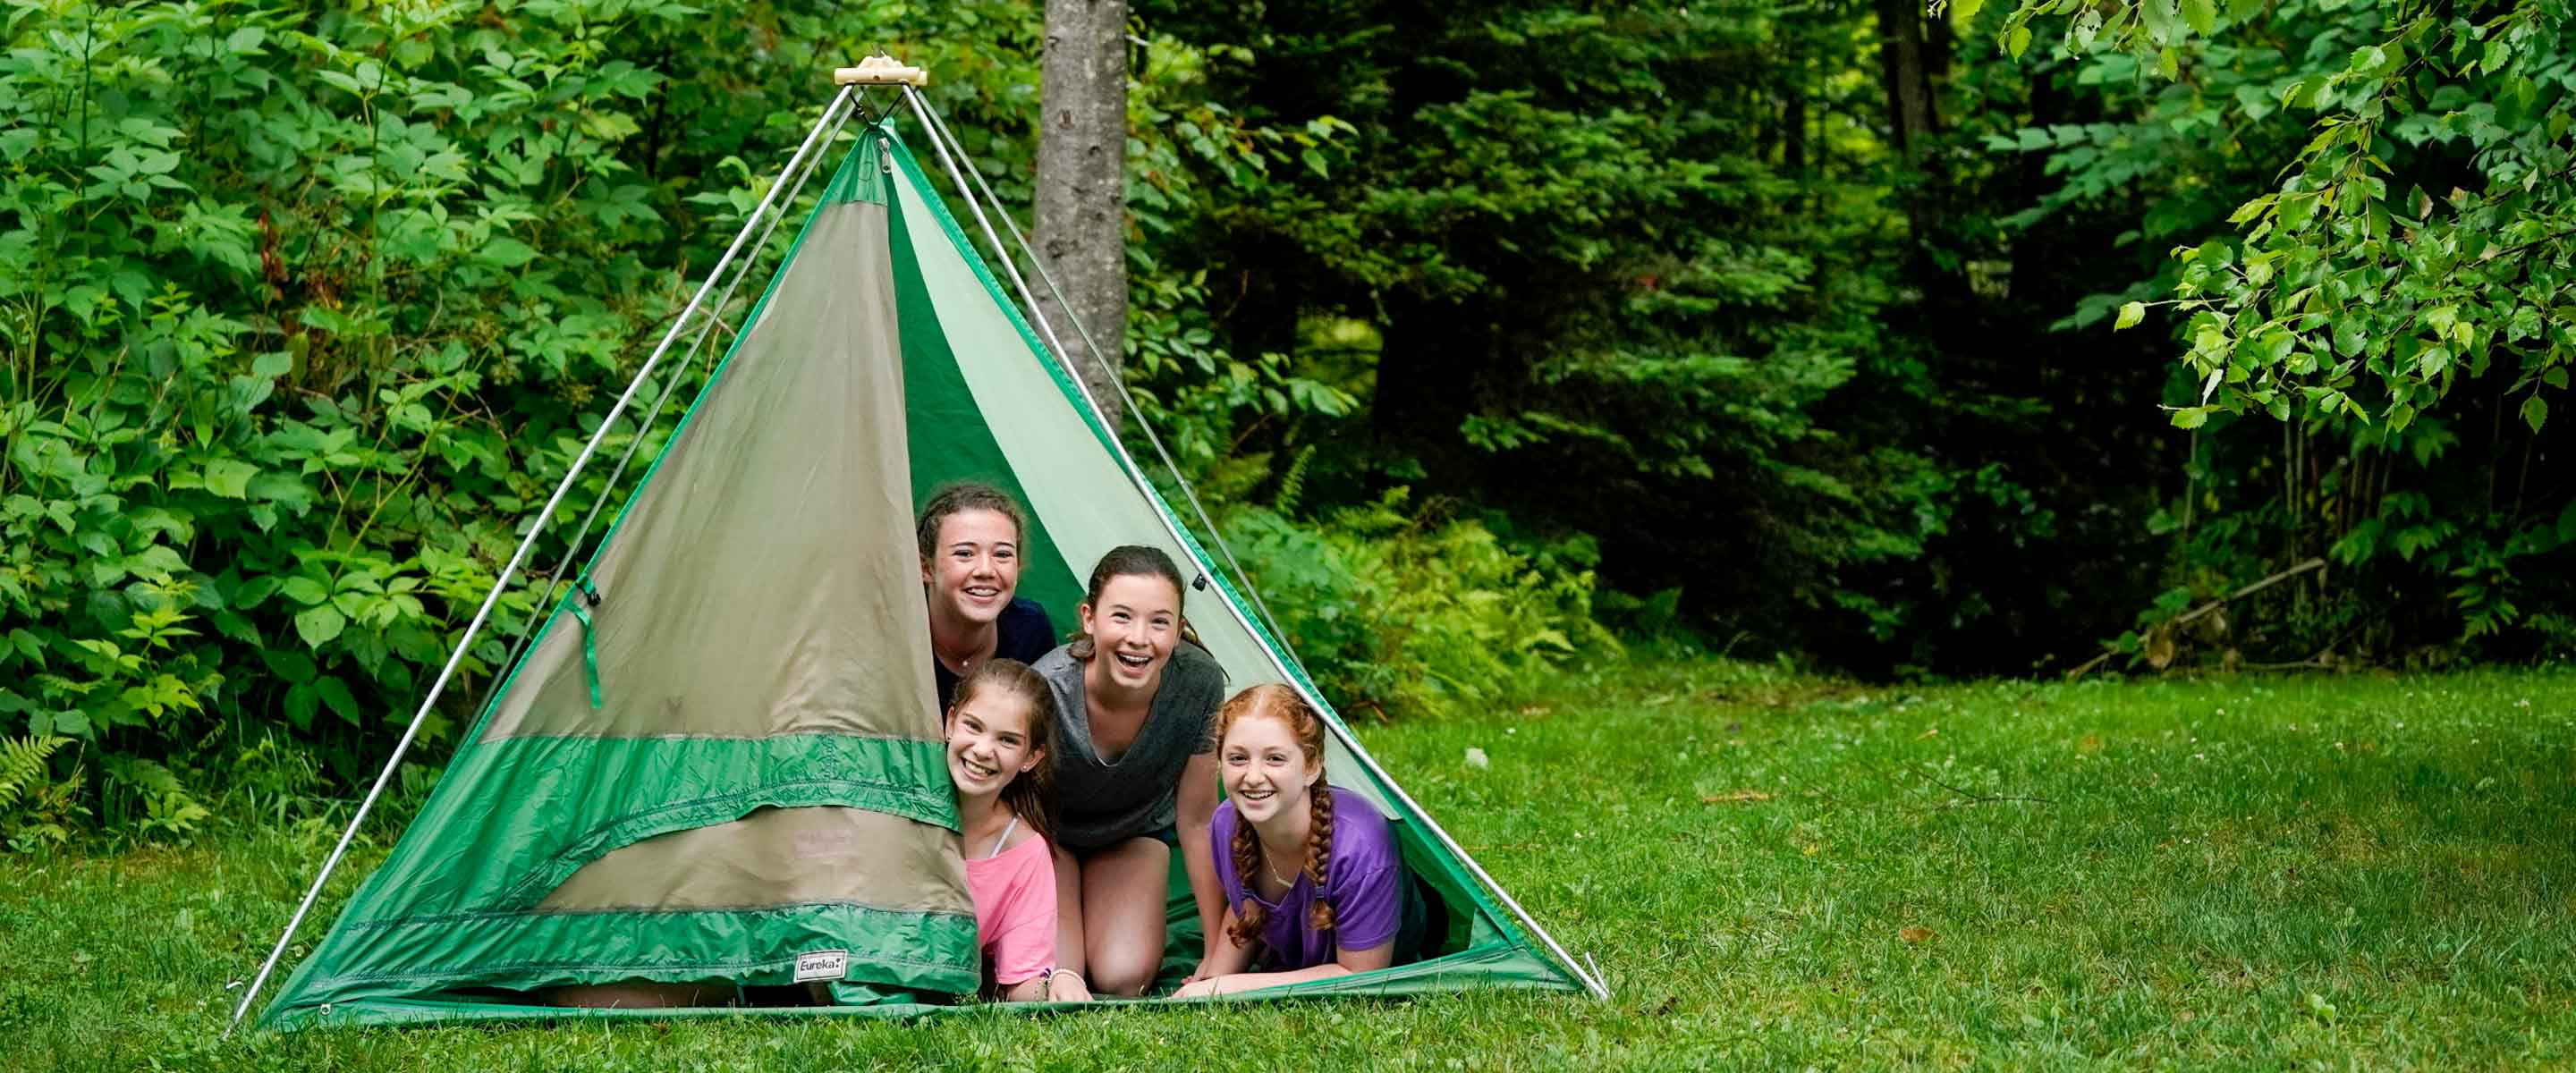 four girls peaking out from a tent